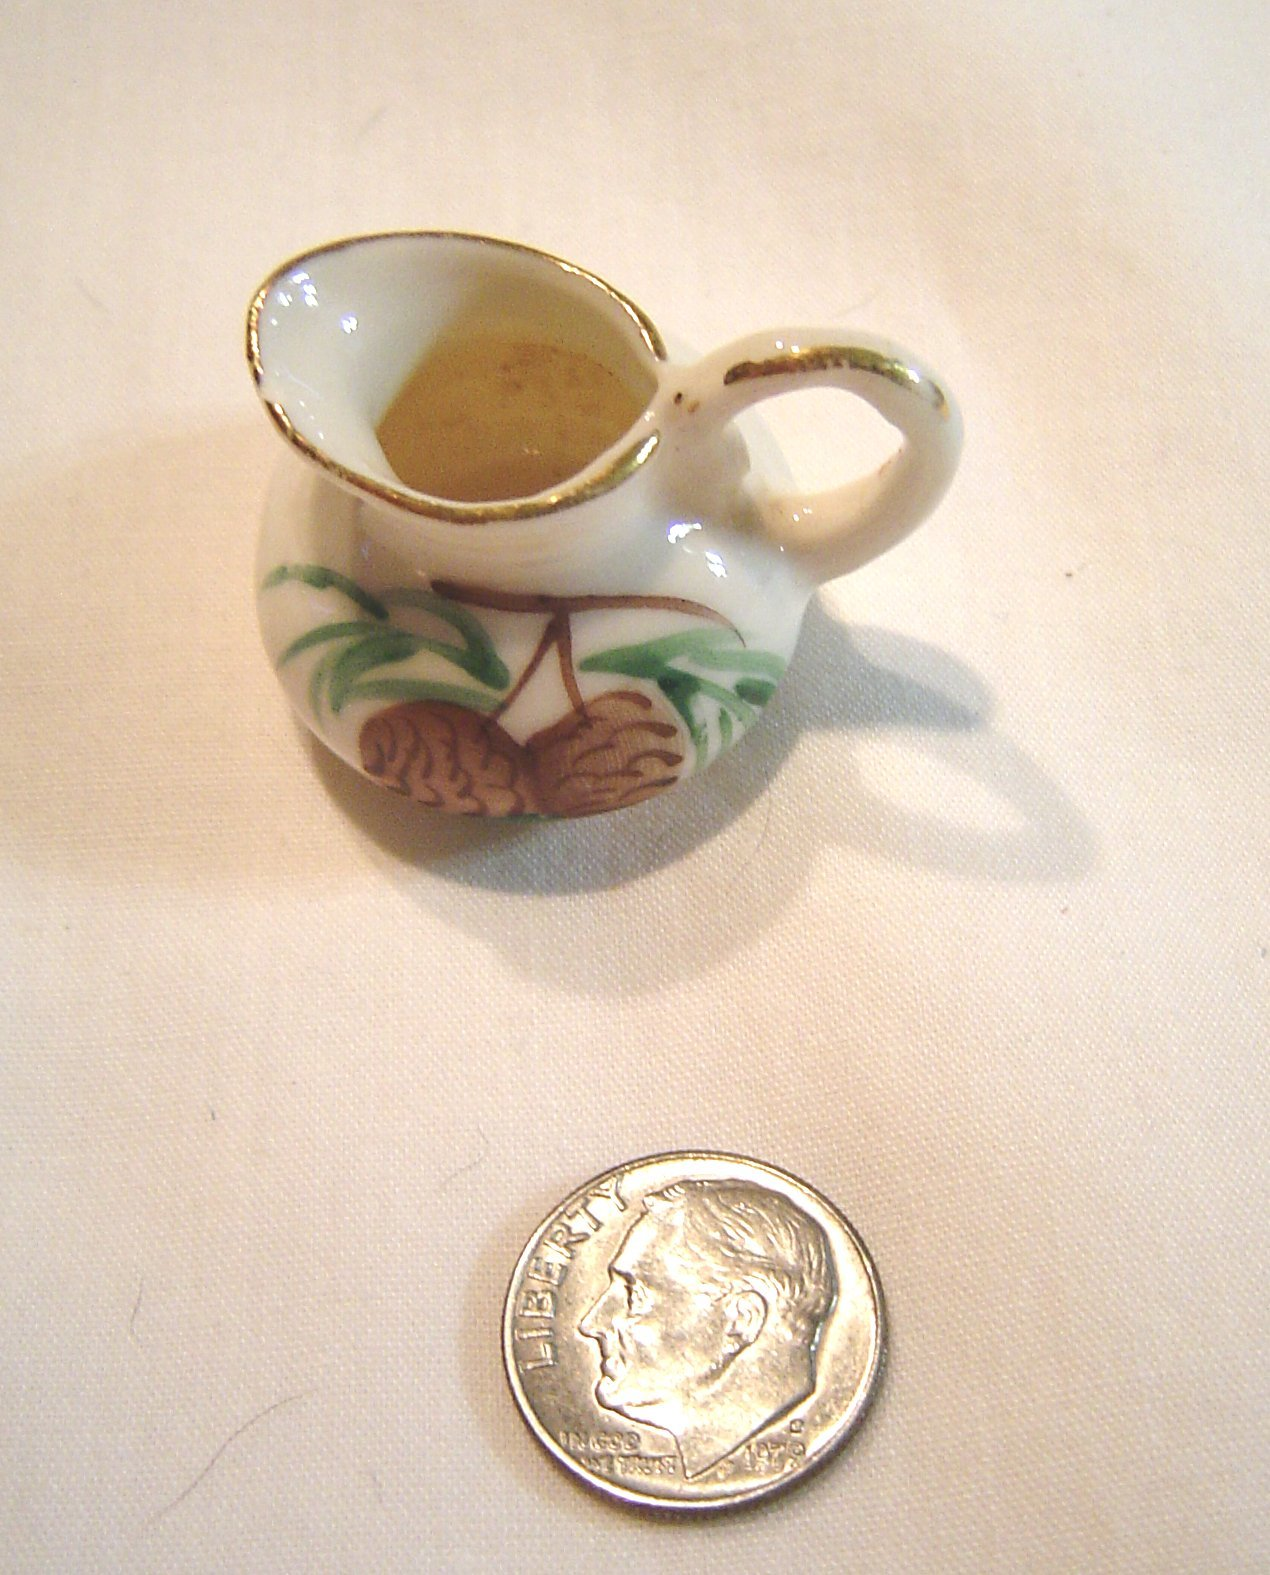 Primary image for Miniature Porcelain Pitcher featuring Pine Cones Dollhouse